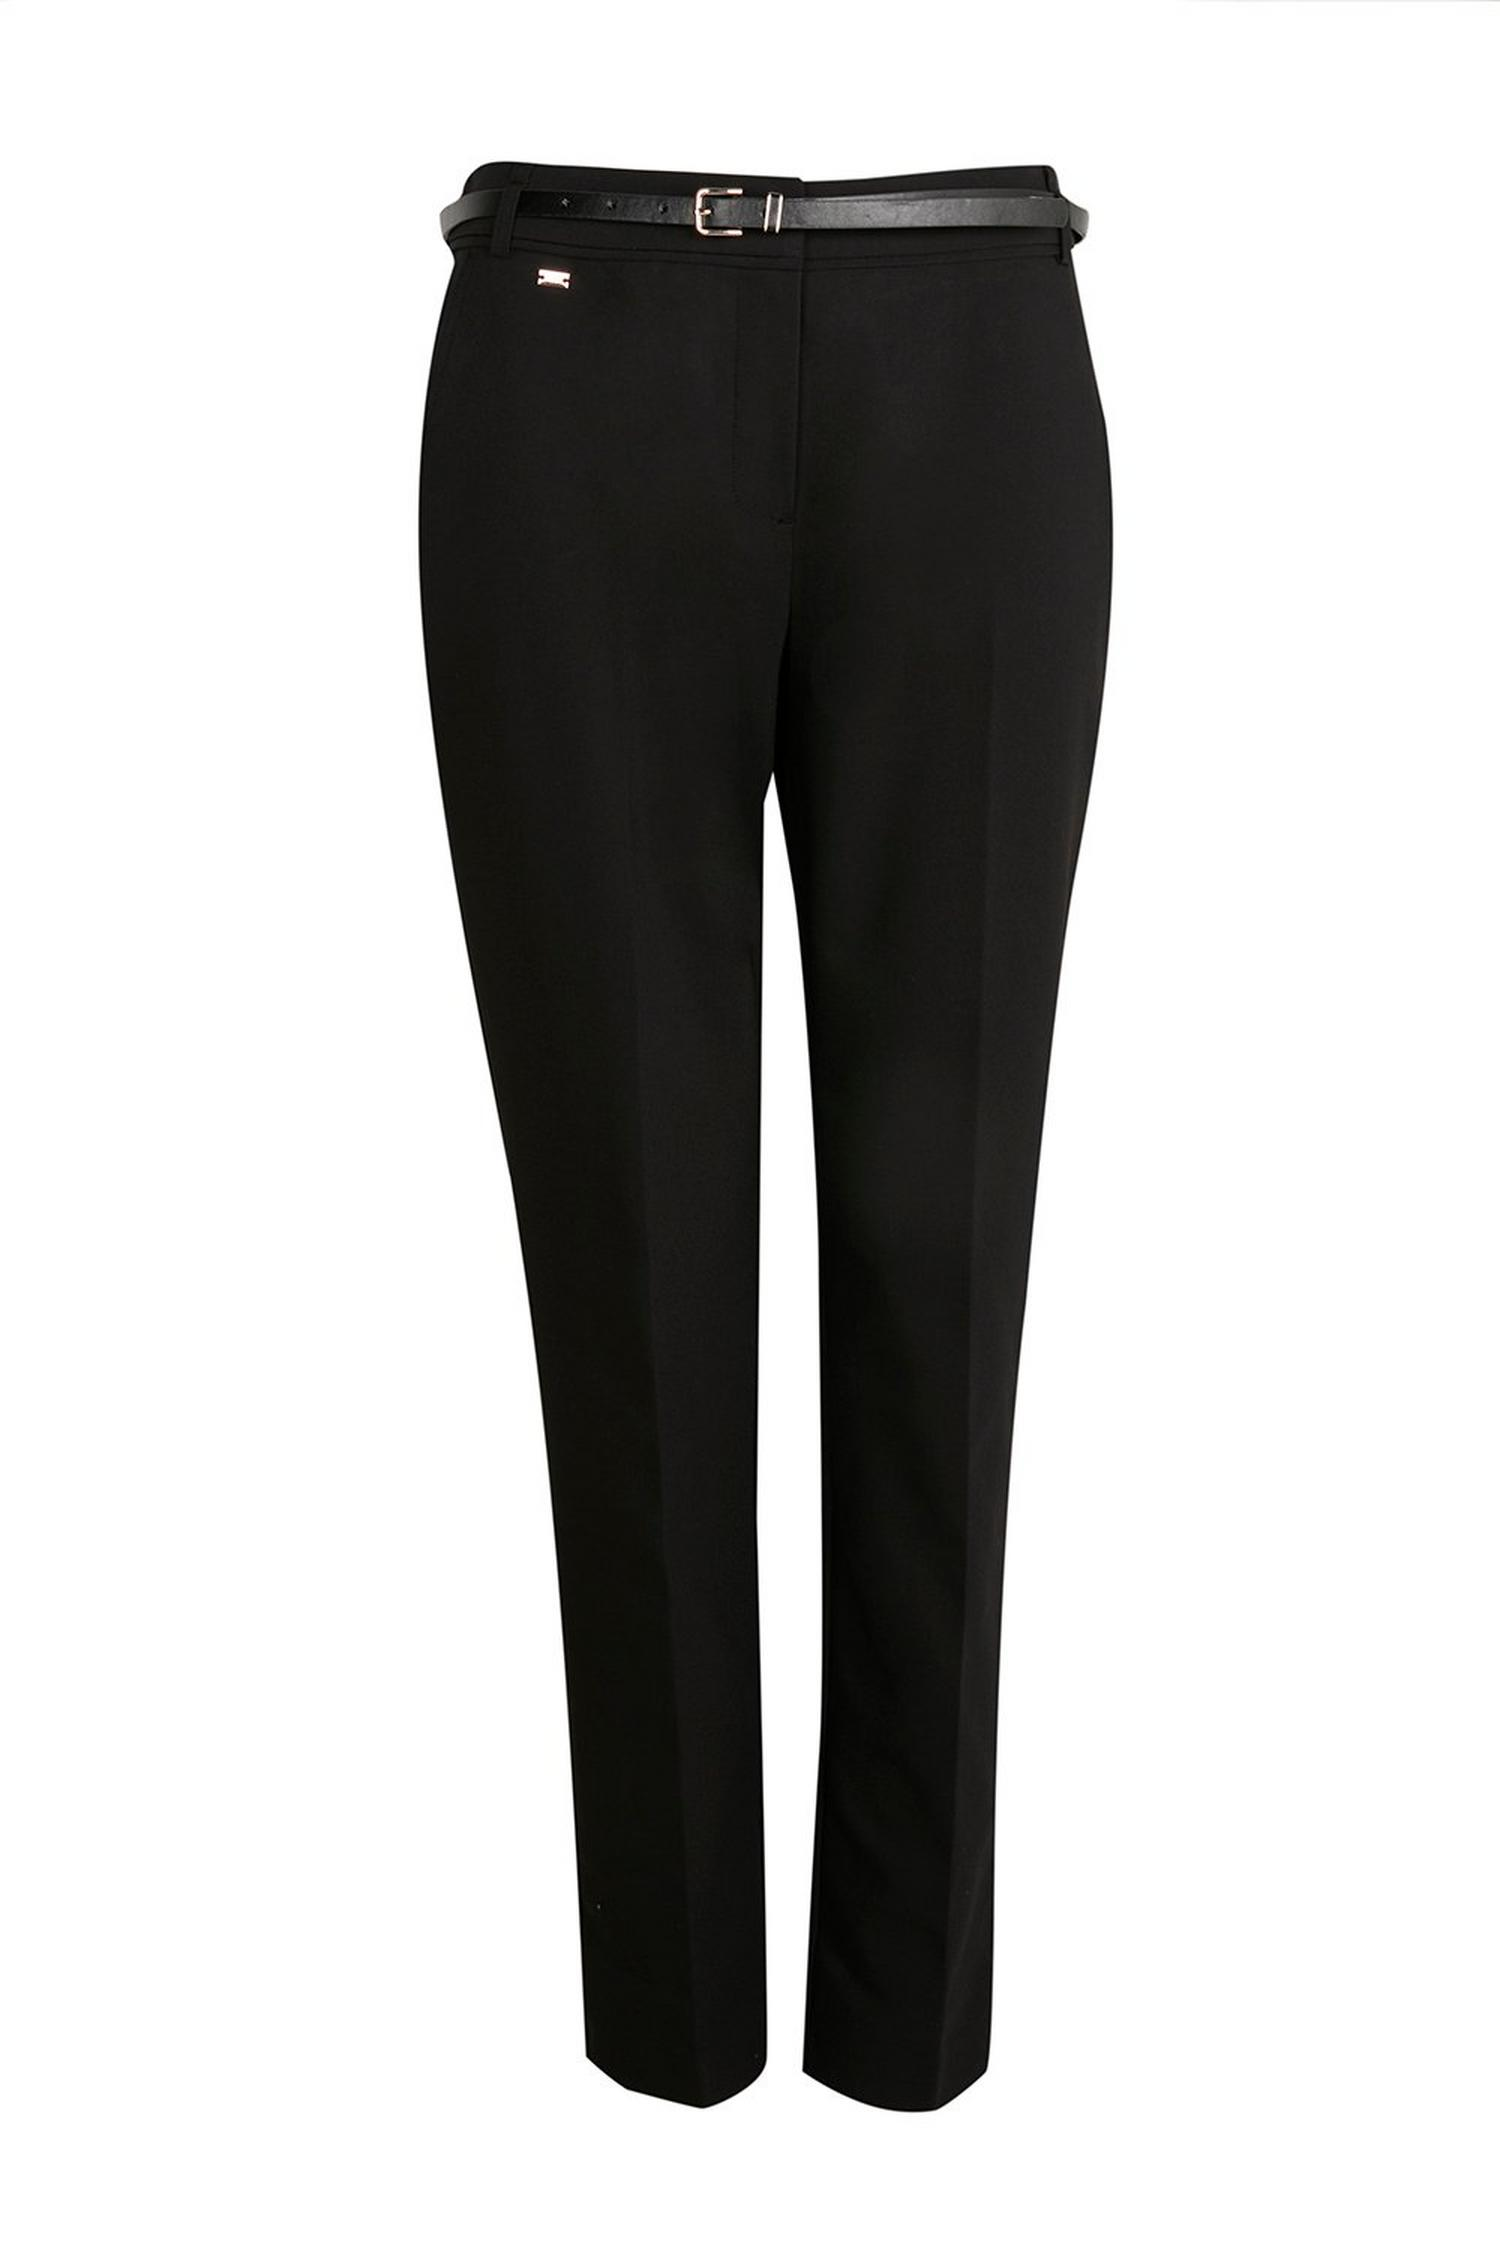 105 PETITE Black Belted Cigarette Trouser image number 1